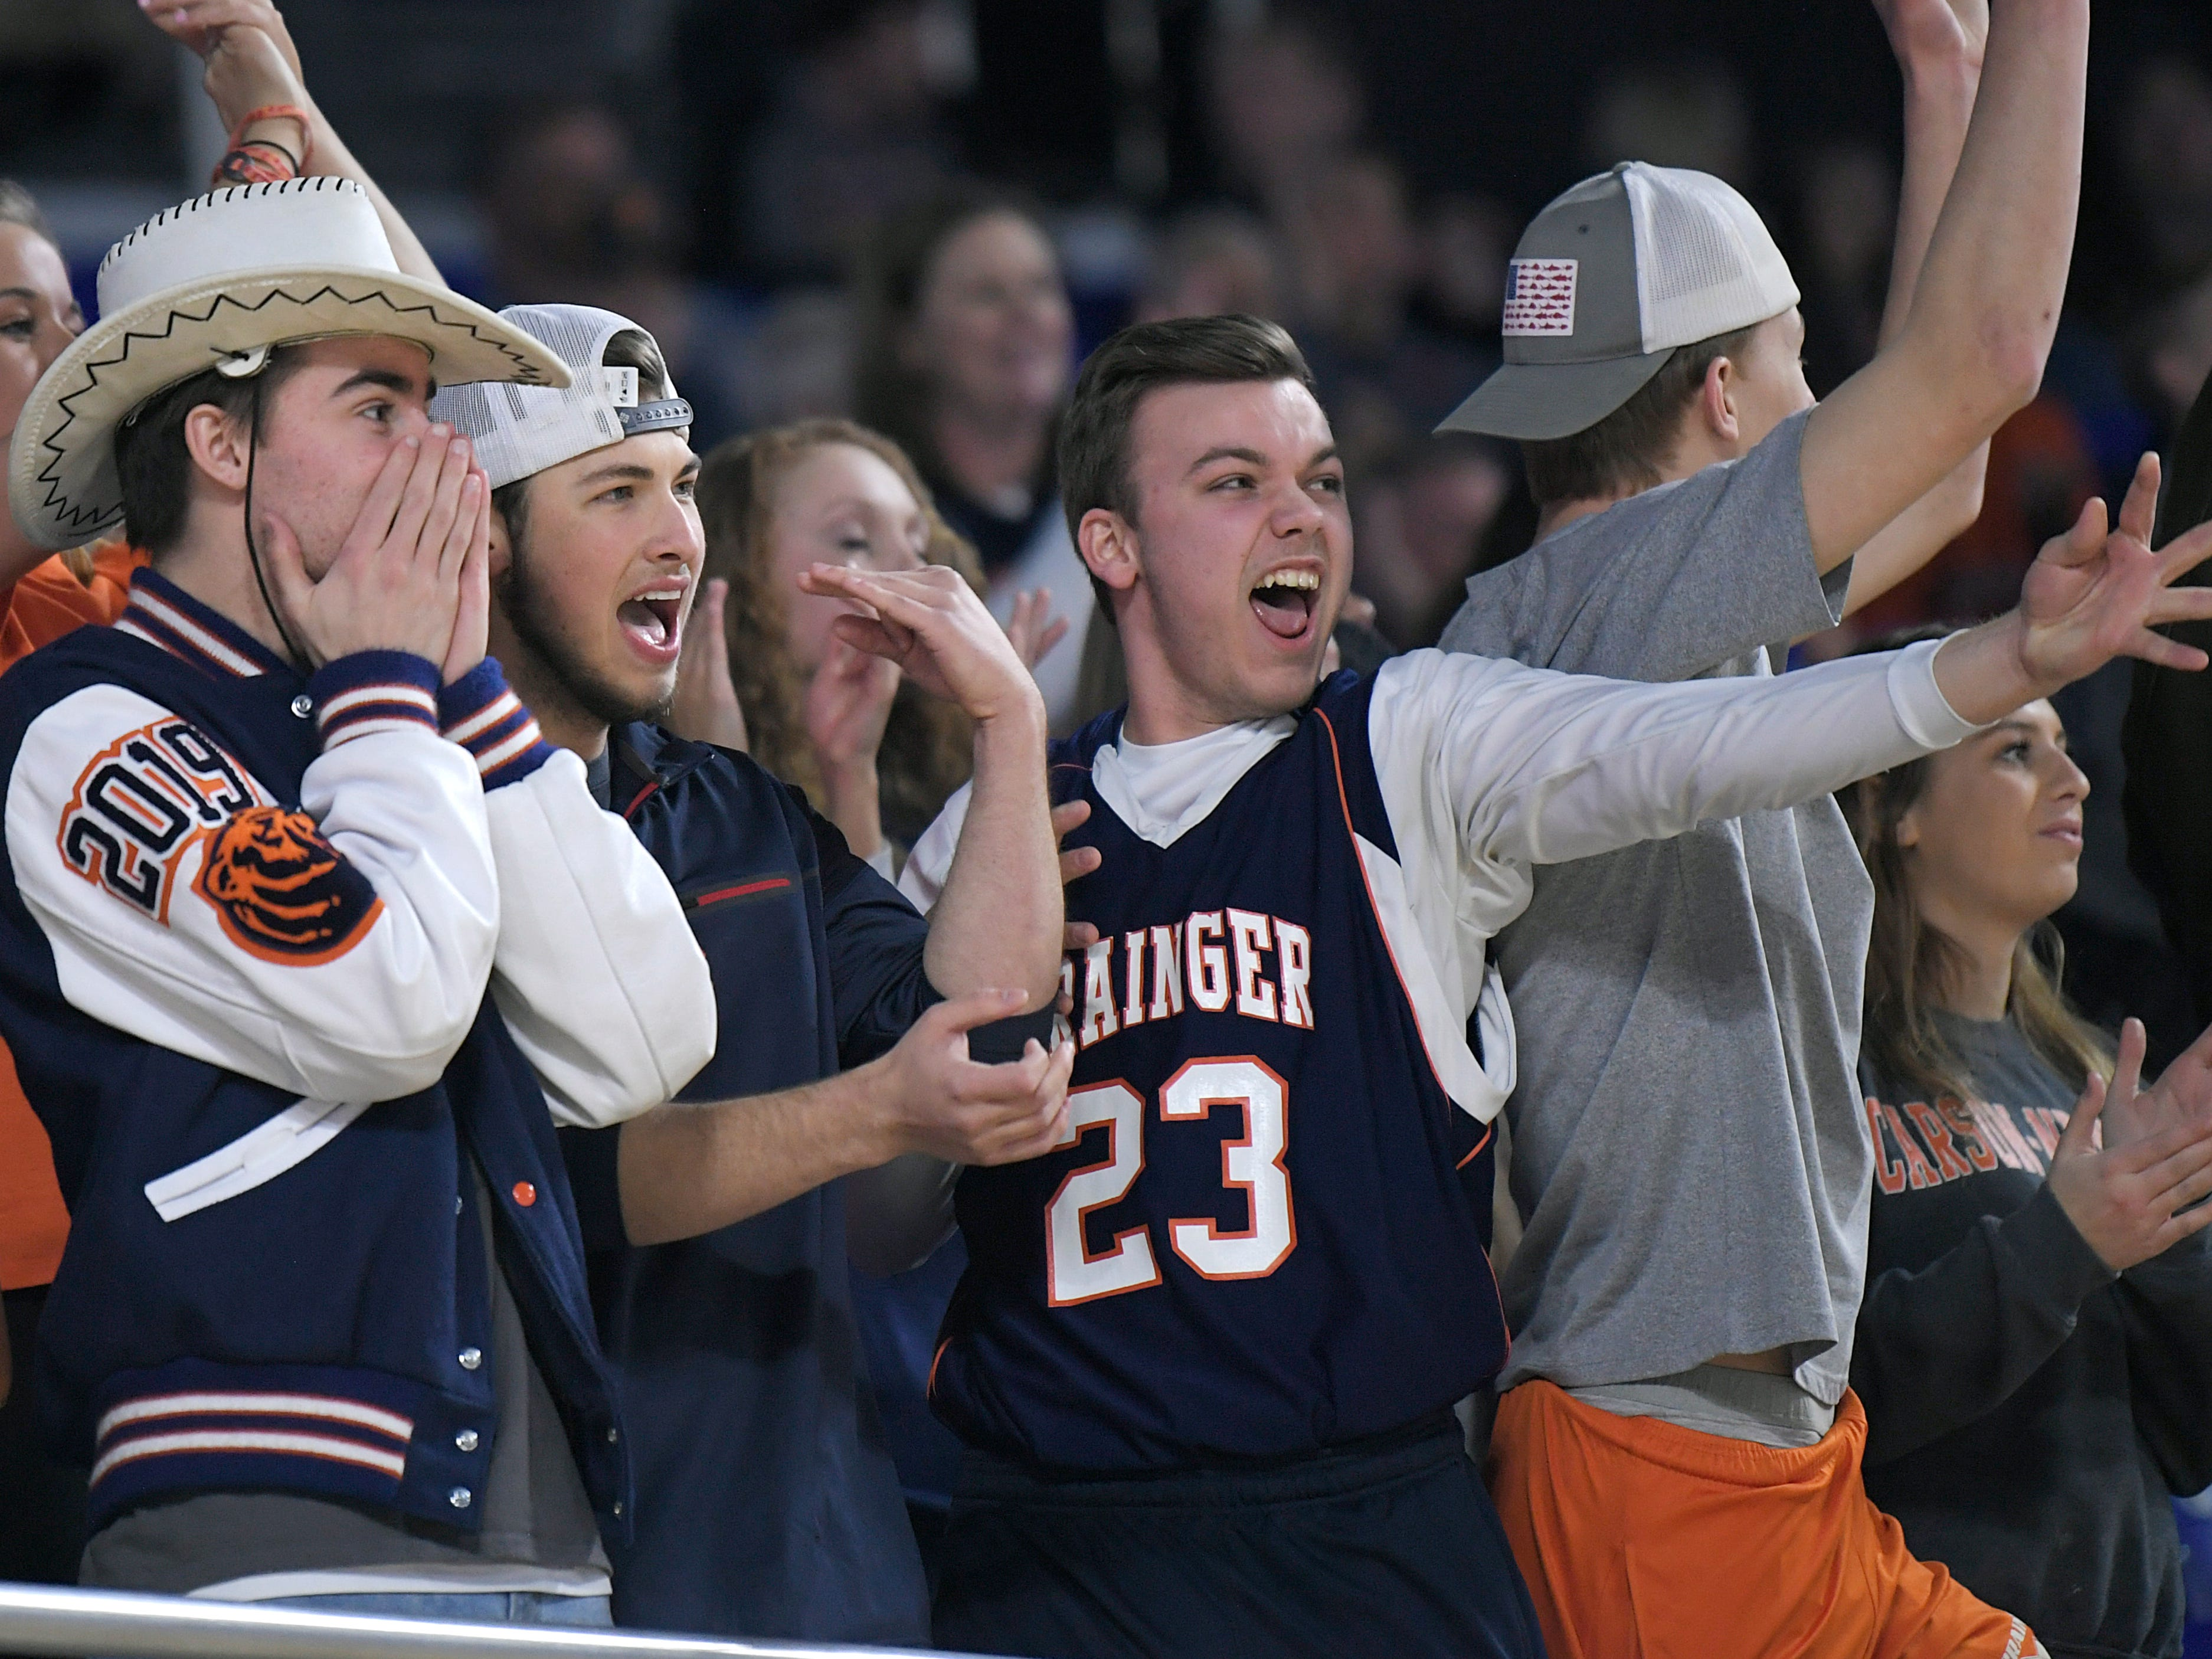 Grainger fans cheer for their team during the quarter final game against Cheatham Countyat the TSSAA BlueCross Class AA girls basketball championship at MTSU's Murphy Center in Murfreesboro on Wednesday, March 6, 2019.